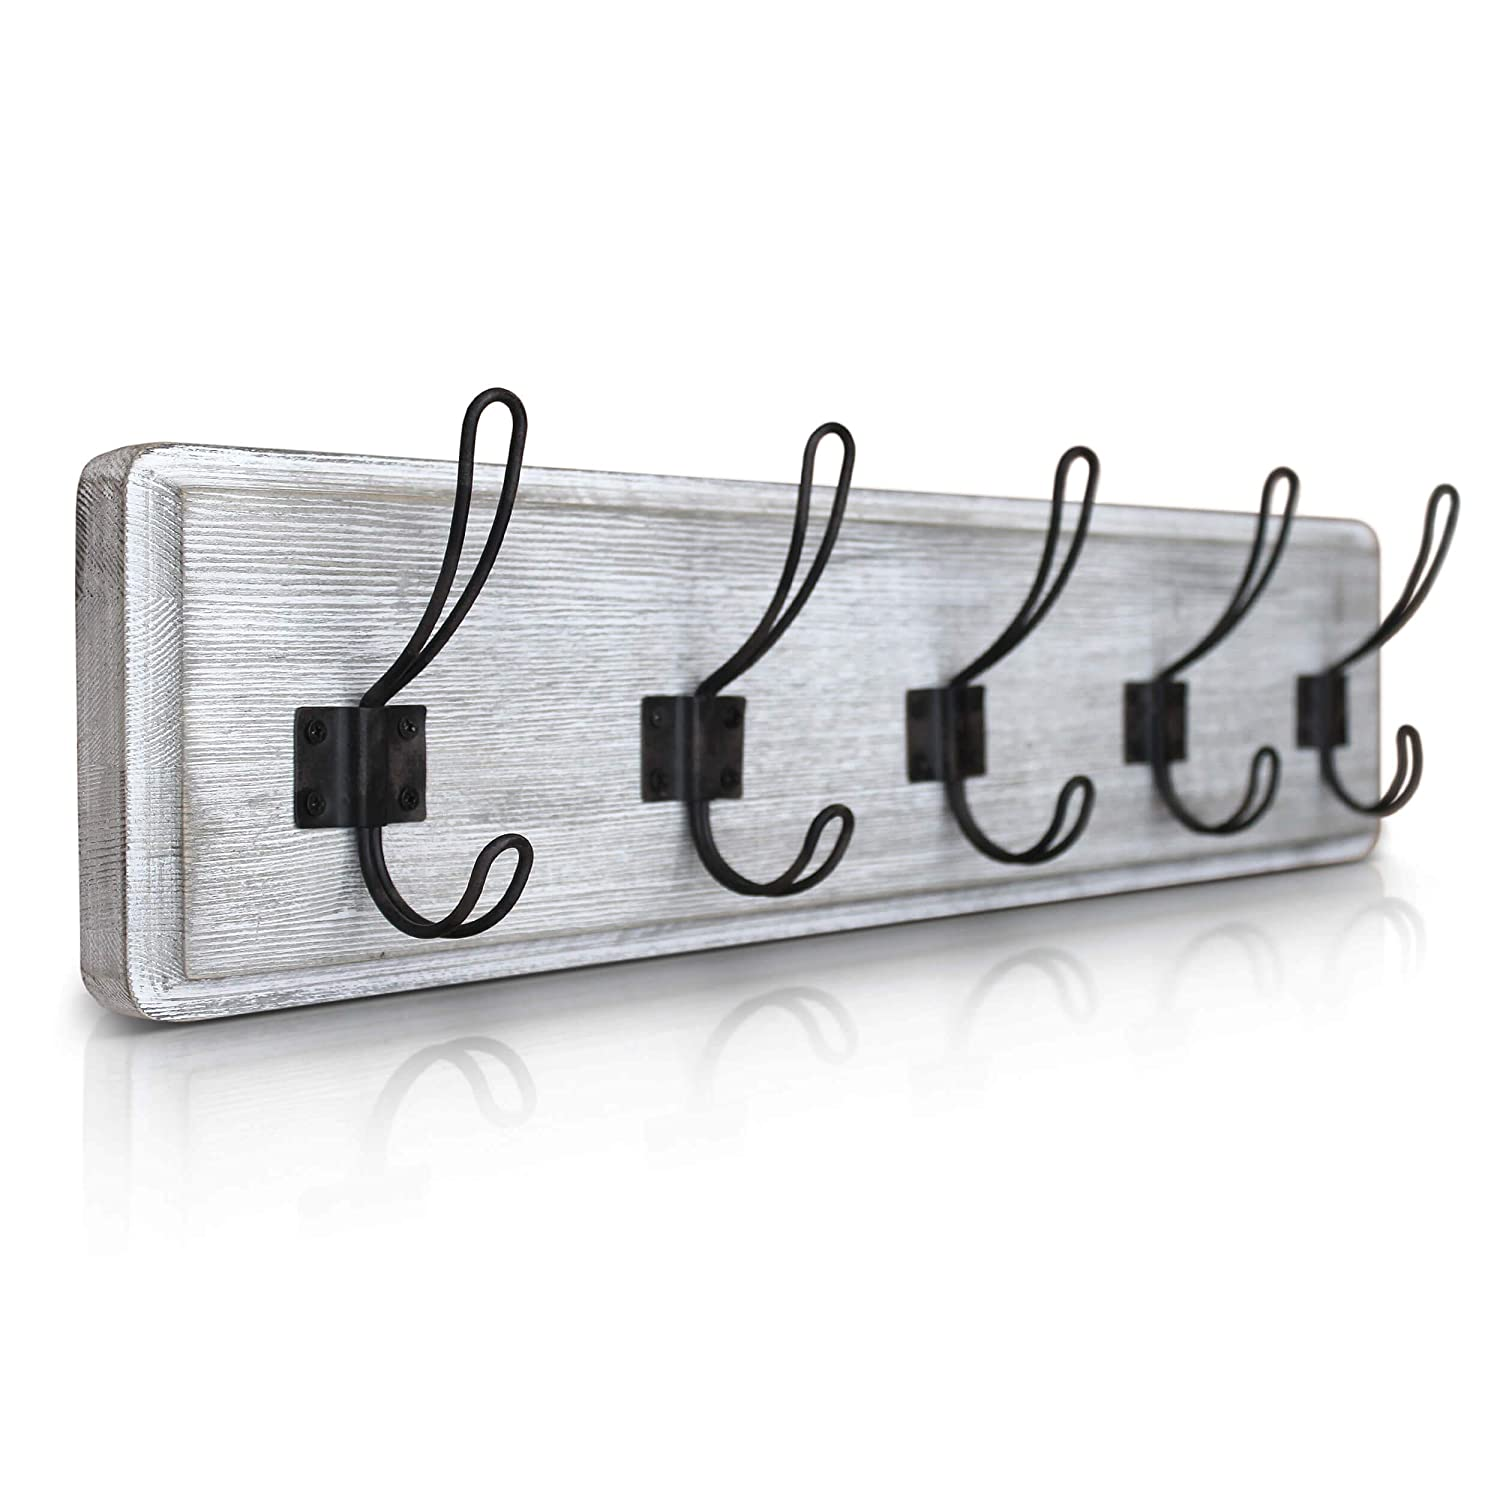 "HBCY Creations Rustic Coat Rack - Wall Mounted Whitewash 24"" Entryway Coat Hooks - 5 Rustic Hooks, Solid Pine Wood. Perfect Touch for Your Entryway, Kitchen, Bathroom. (Whitewash)"